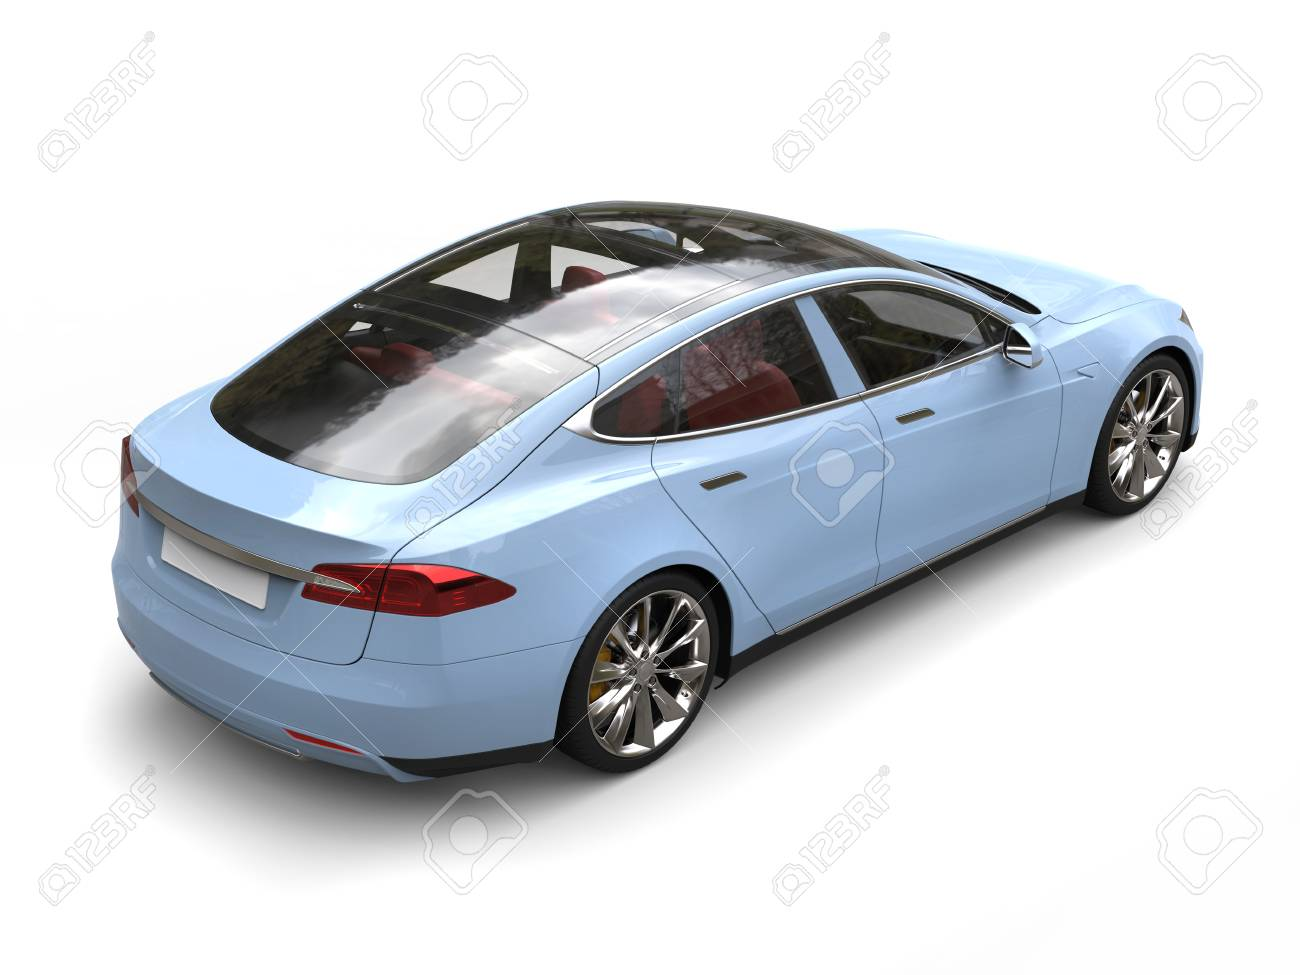 Pastel Blue Modern Electric Sports Car Tail View Stock Photo Picture And Royalty Free Image Image 109753685